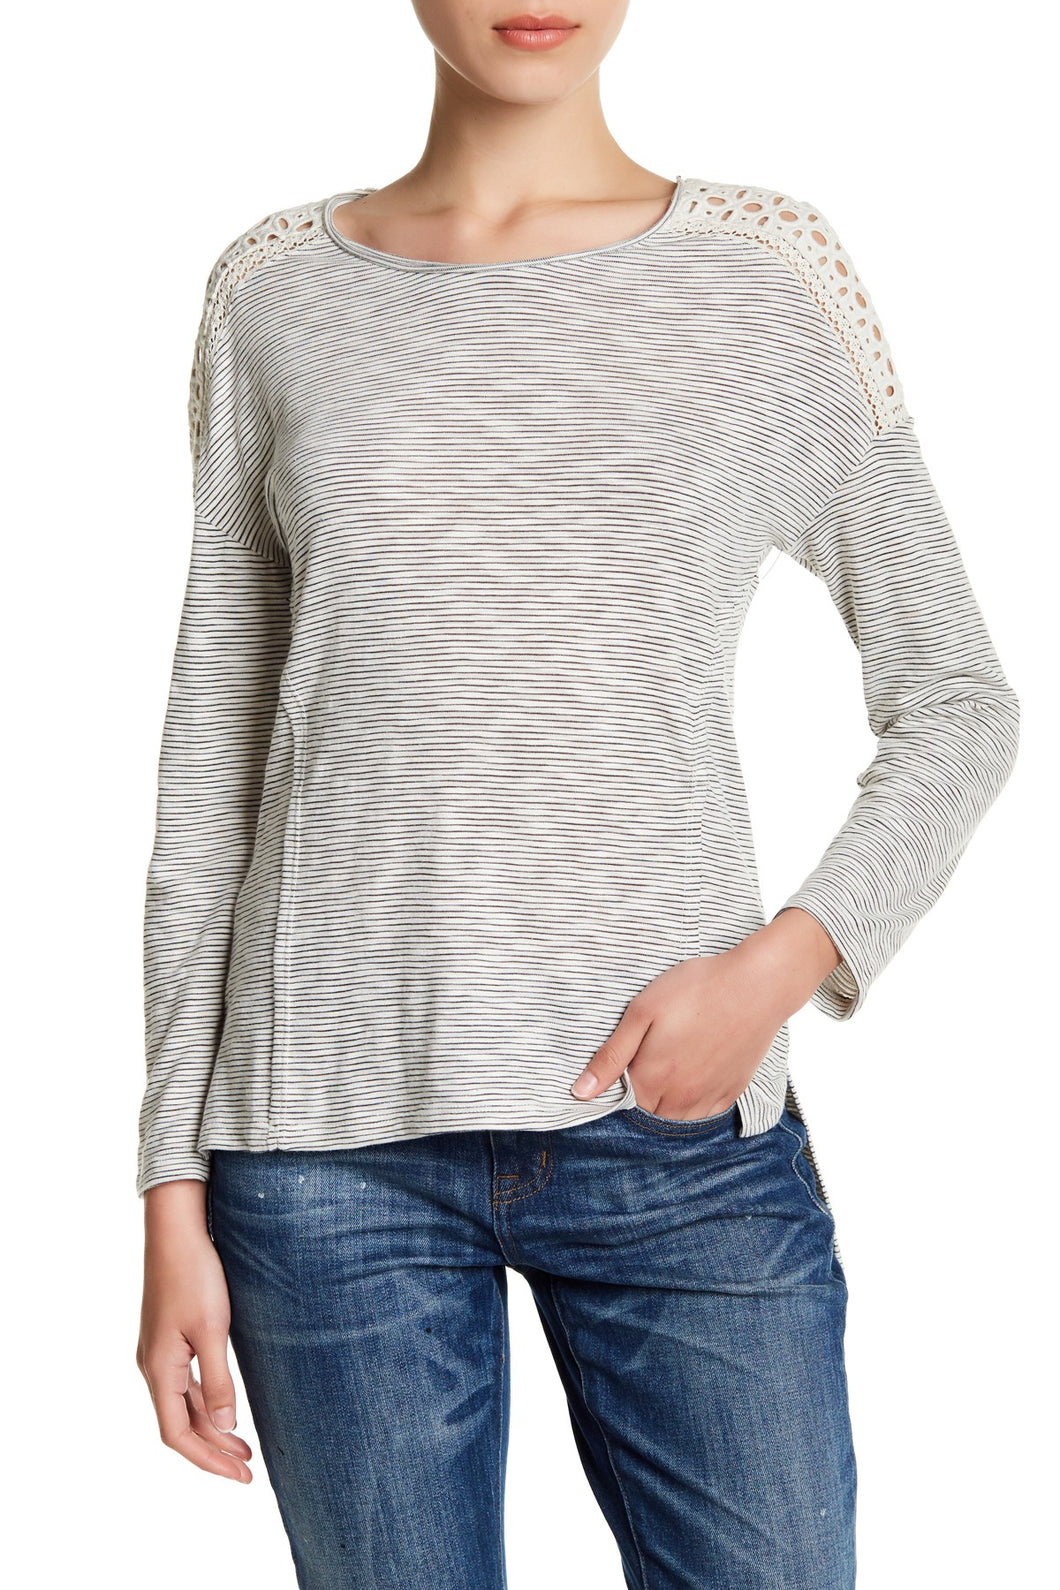 Black & Ivory - Striped Eyelet Yoke Shirt